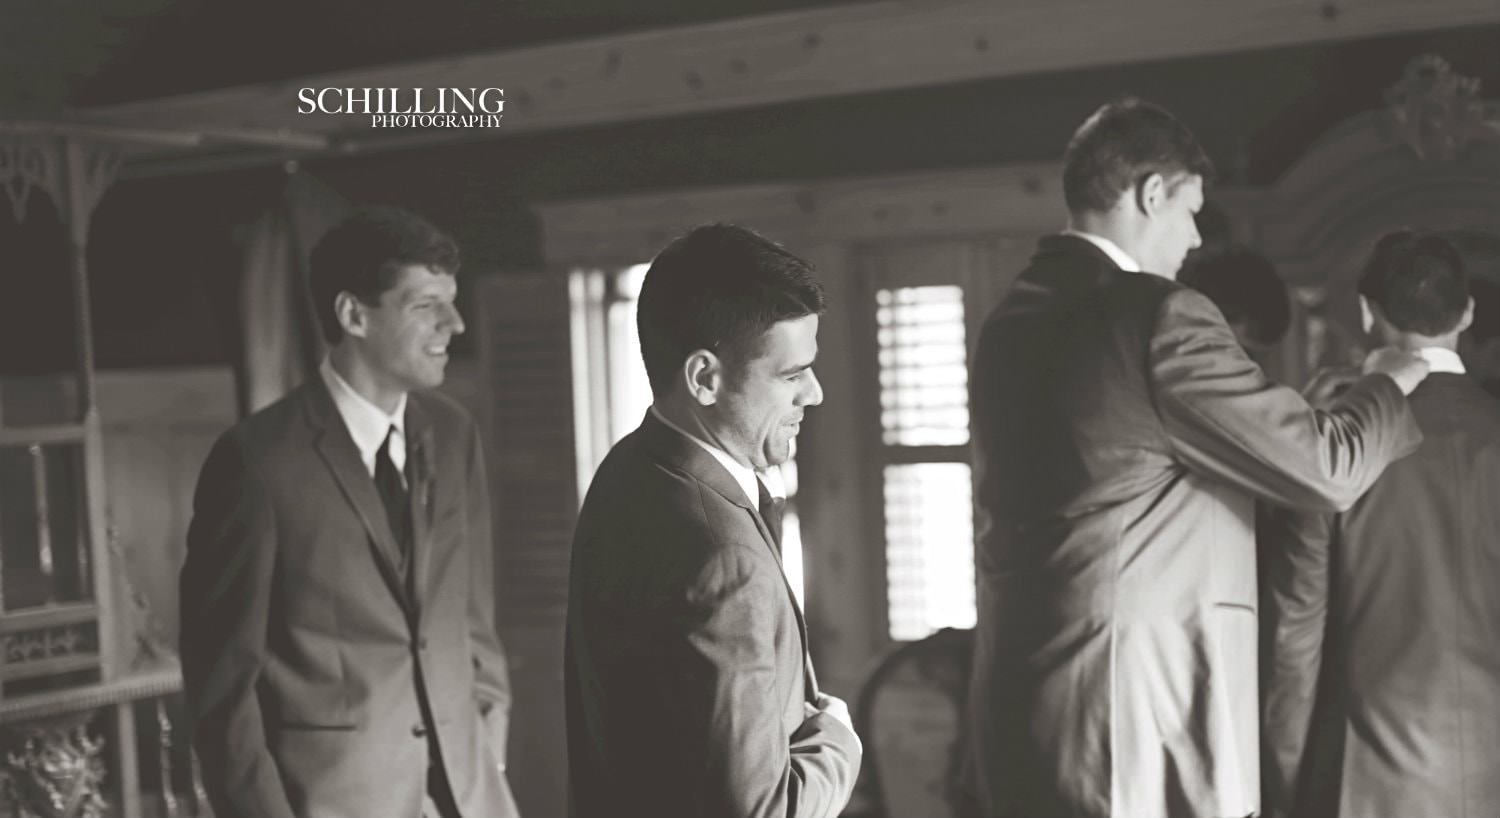 Black and white photo of several men dressed suits preparing for a wedding